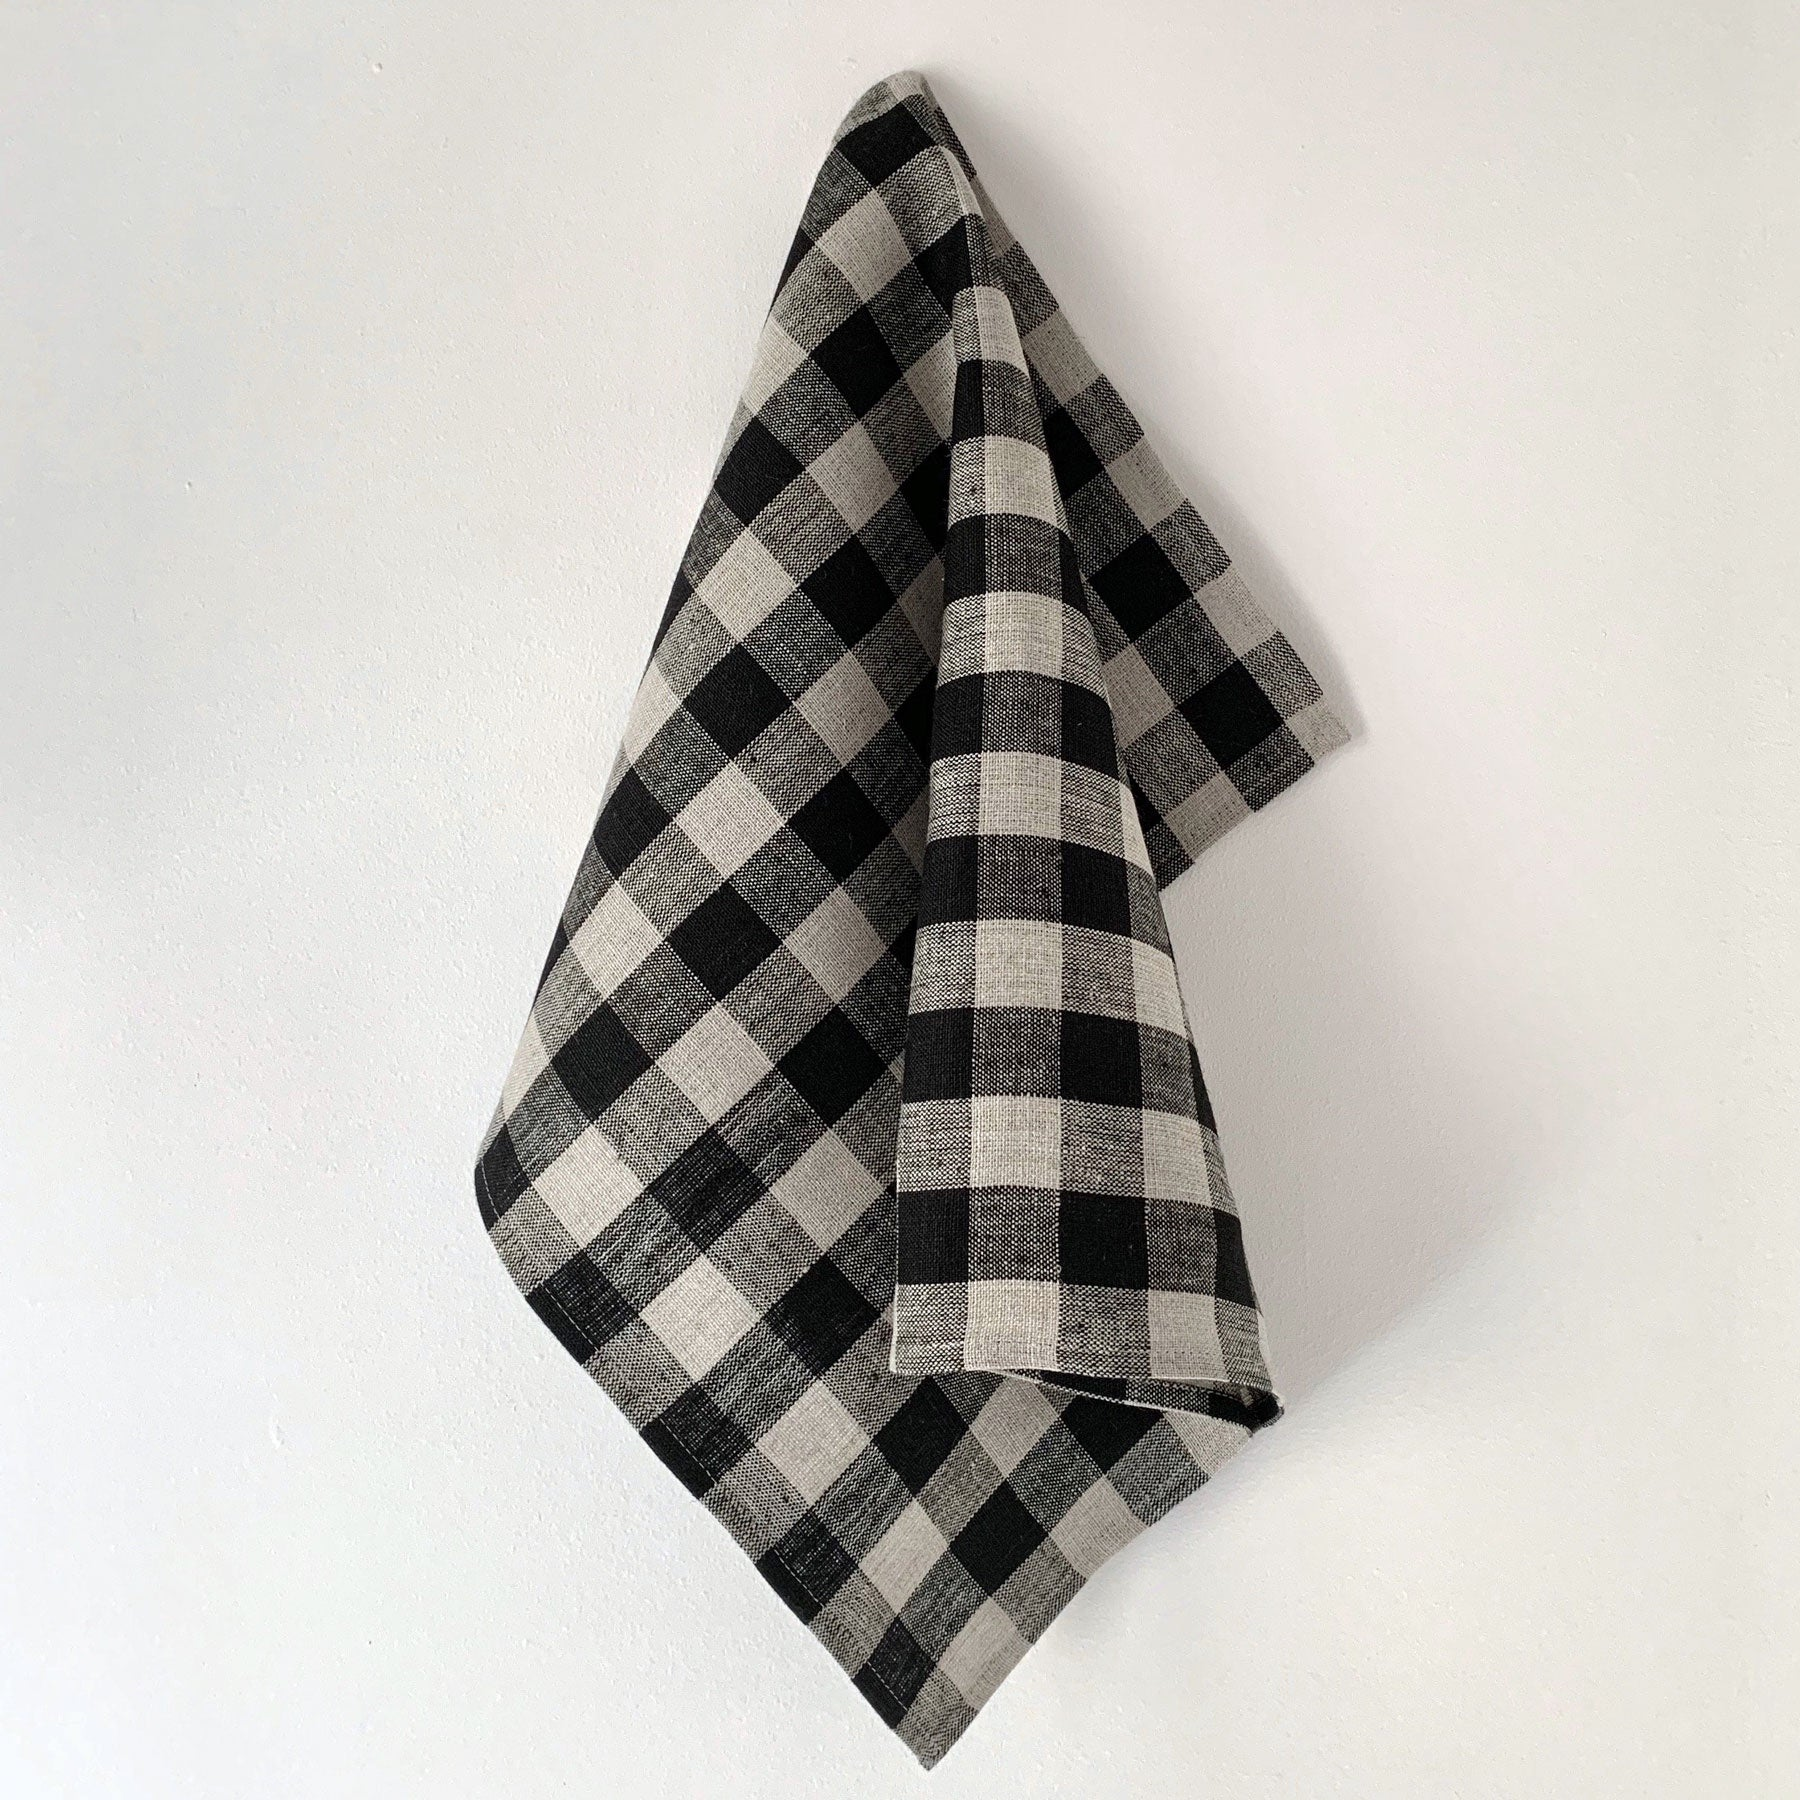 Fog Linen Work Thick Dishcloth Set in Natural Gingham